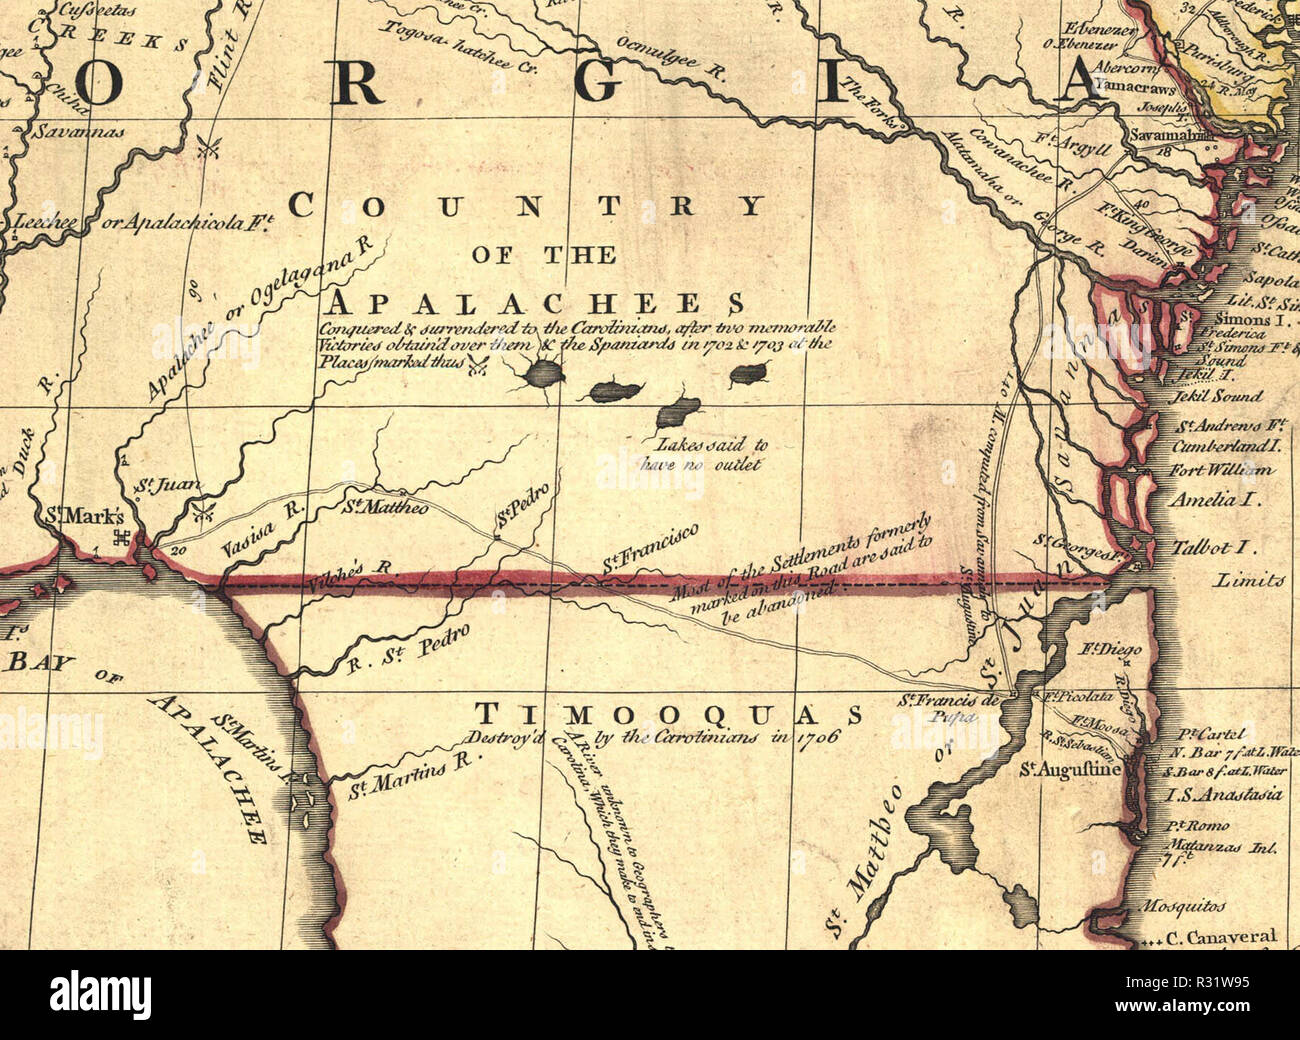 The Concept of l'homme sauvage and early French colonialism in the Americas